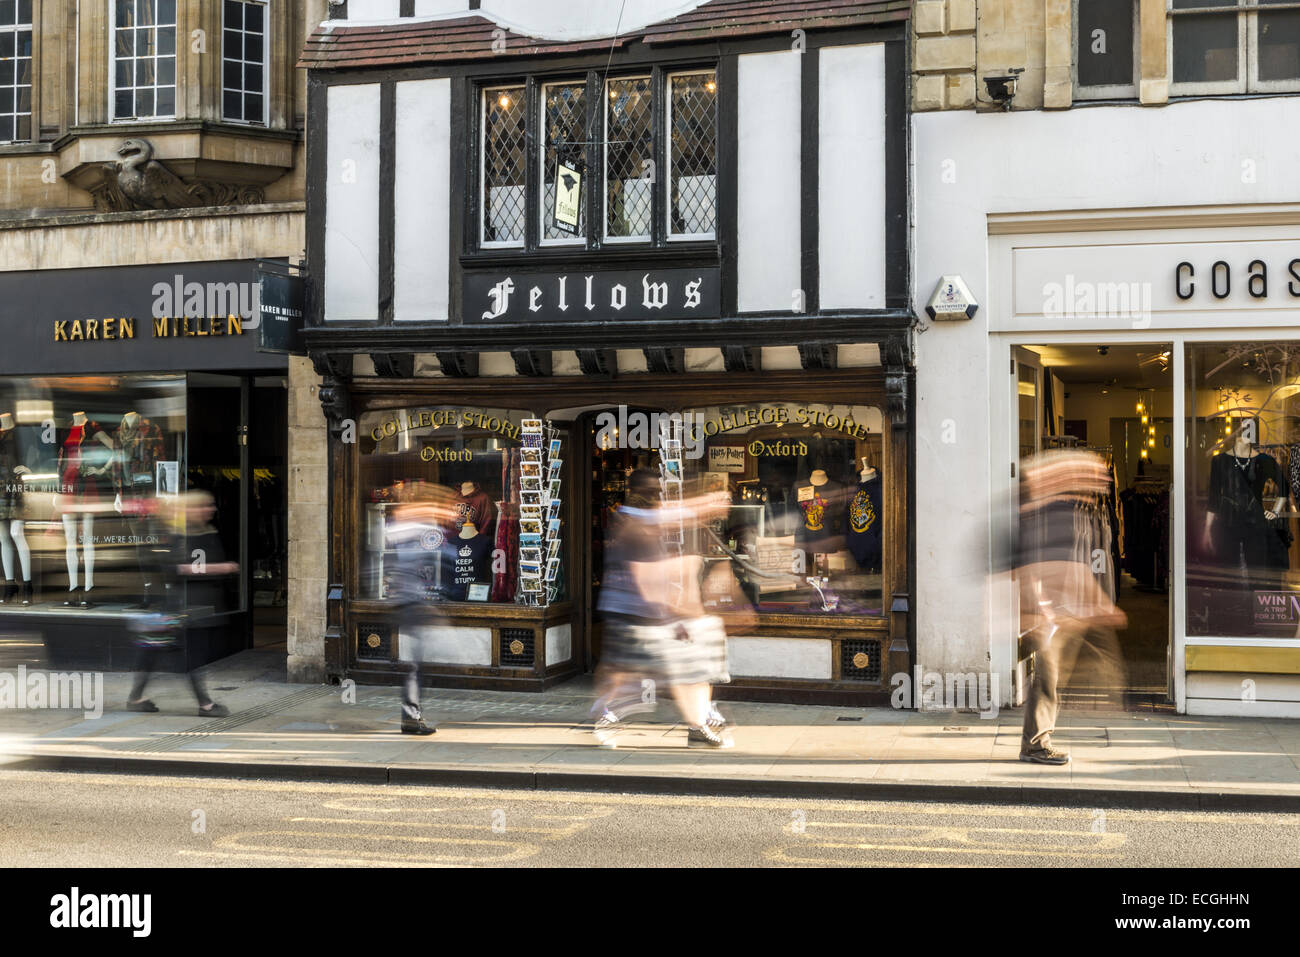 A long exposure of pedestrians passing Fellows College Store on the High Street, Oxford, UK - Stock Image